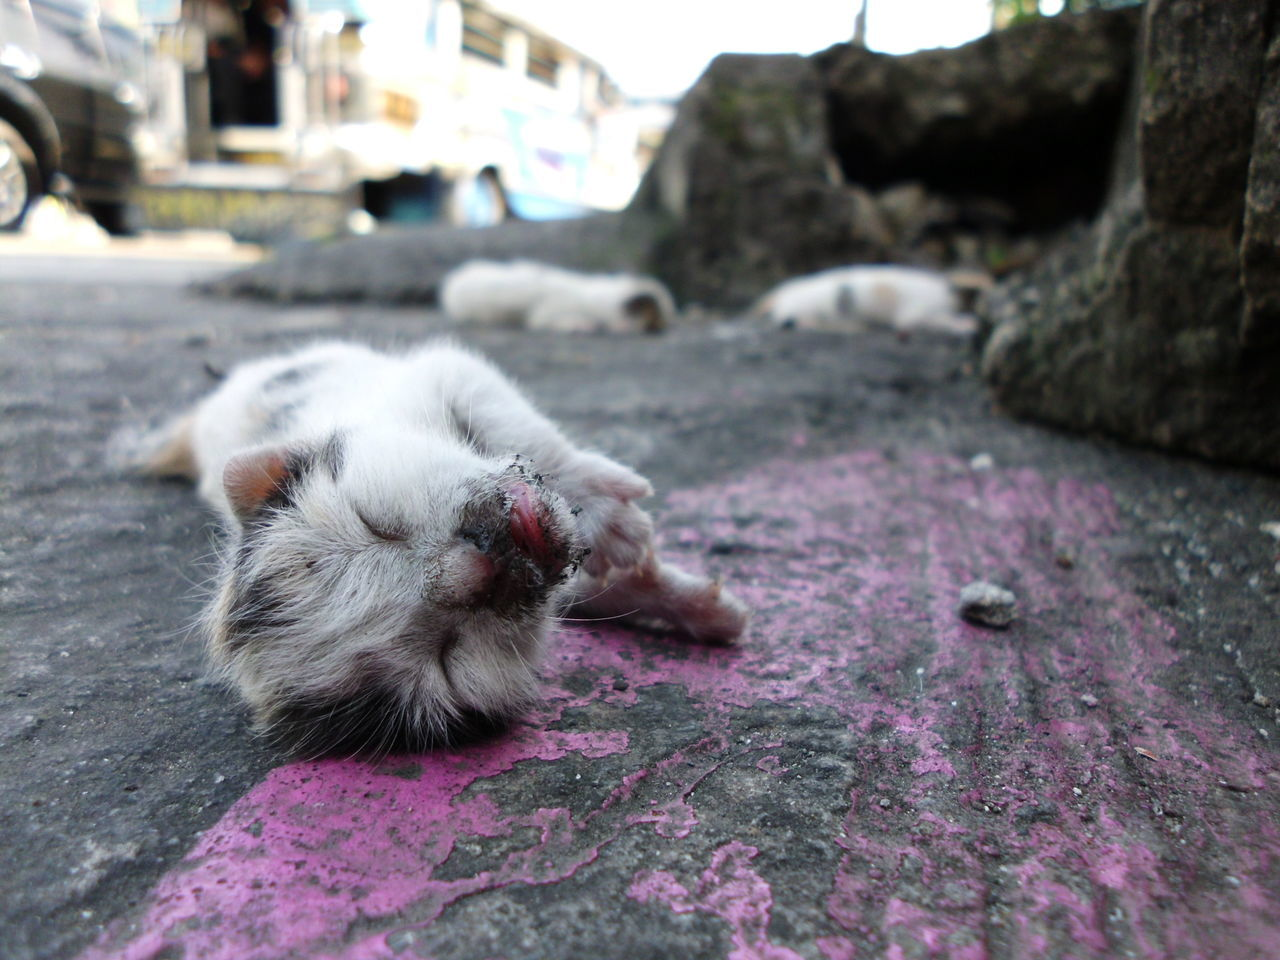 Justice Abandoned Sad Hurt! Injustice Kitty Kitty Cat Victim Homeless Cats Homeless Outdoors No People Animal Photography Streetphotography Philippines